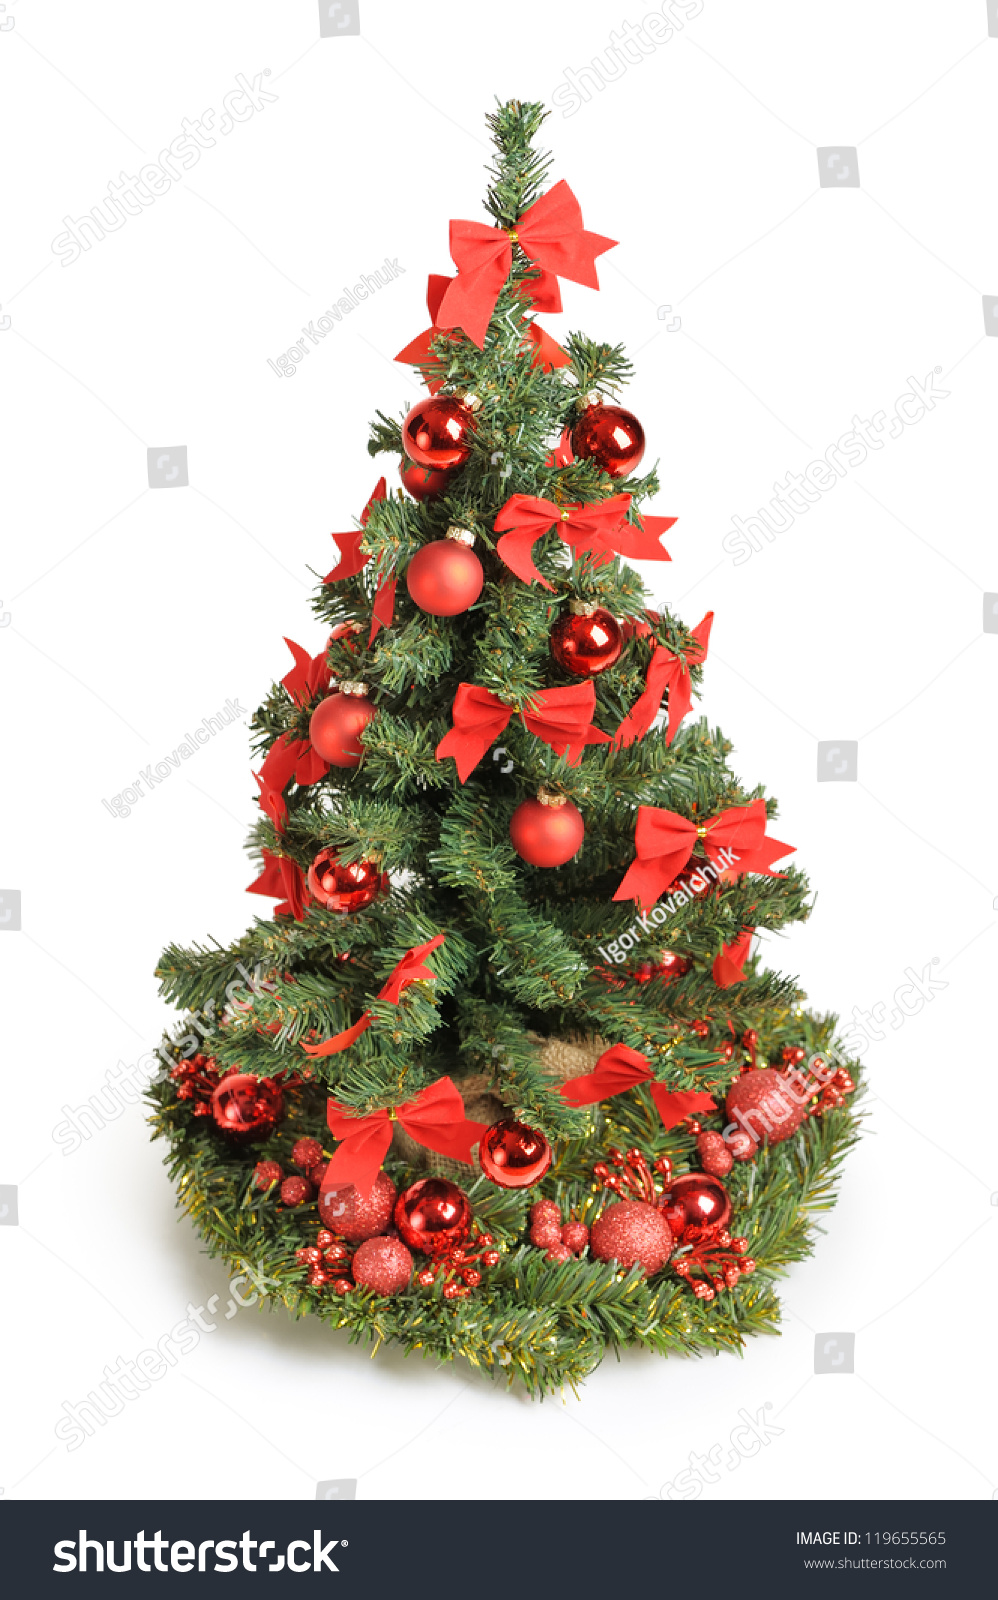 Christmas tree with red ornaments isolated on white stock for White tree red ornaments